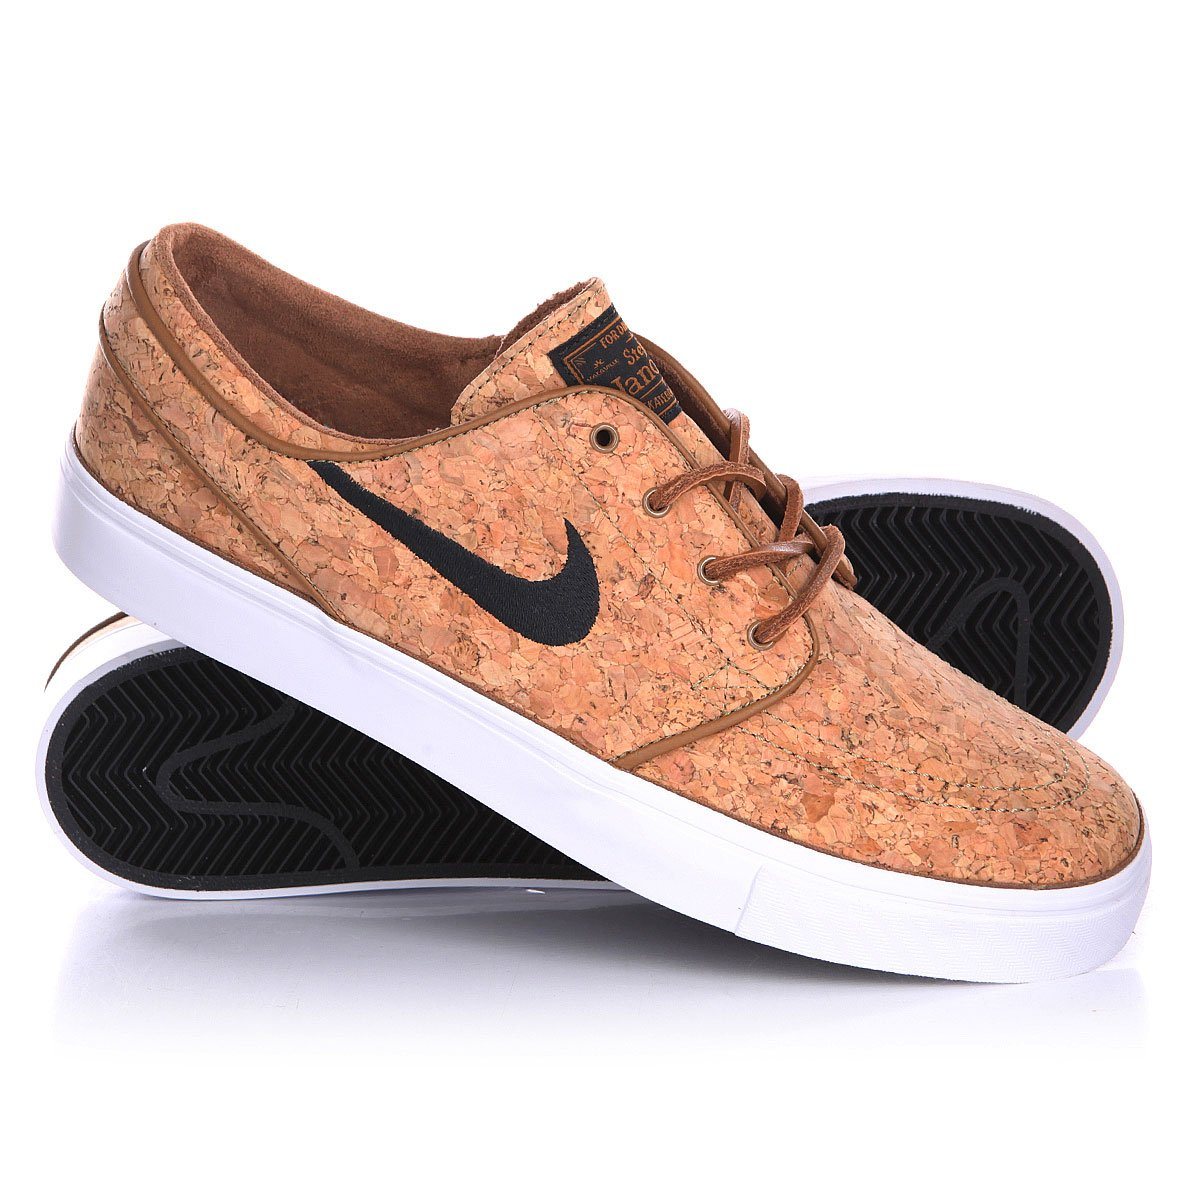 6dd058b93a21 Купить кеды низкие Nike Zoom Stefan Janoski Elite Ale Brown Black ...